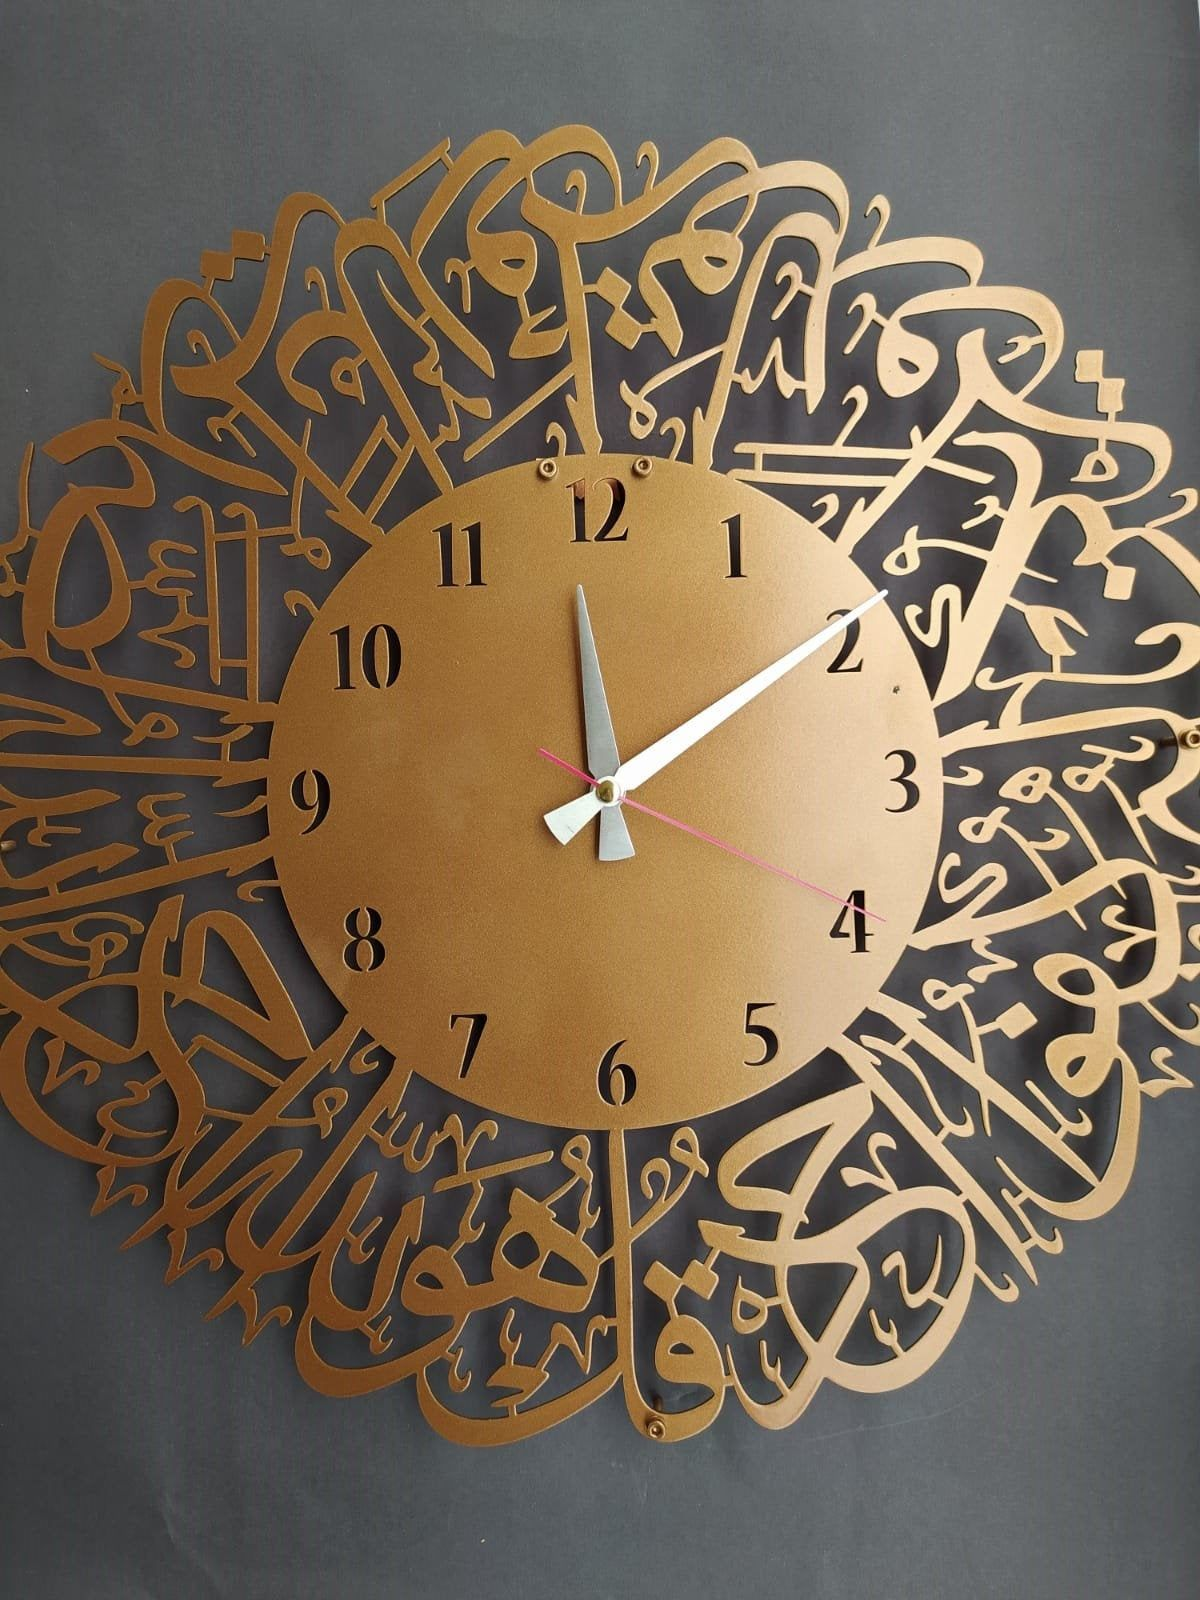 Extra Large 70 Cm Dia Ikhlas Calligraphy Metal Wall Clock With Static Paint Https Etsy Me 2gjbocv In 2020 Islamic Wall Art Large Metal Wall Clock Etsy Wall Art